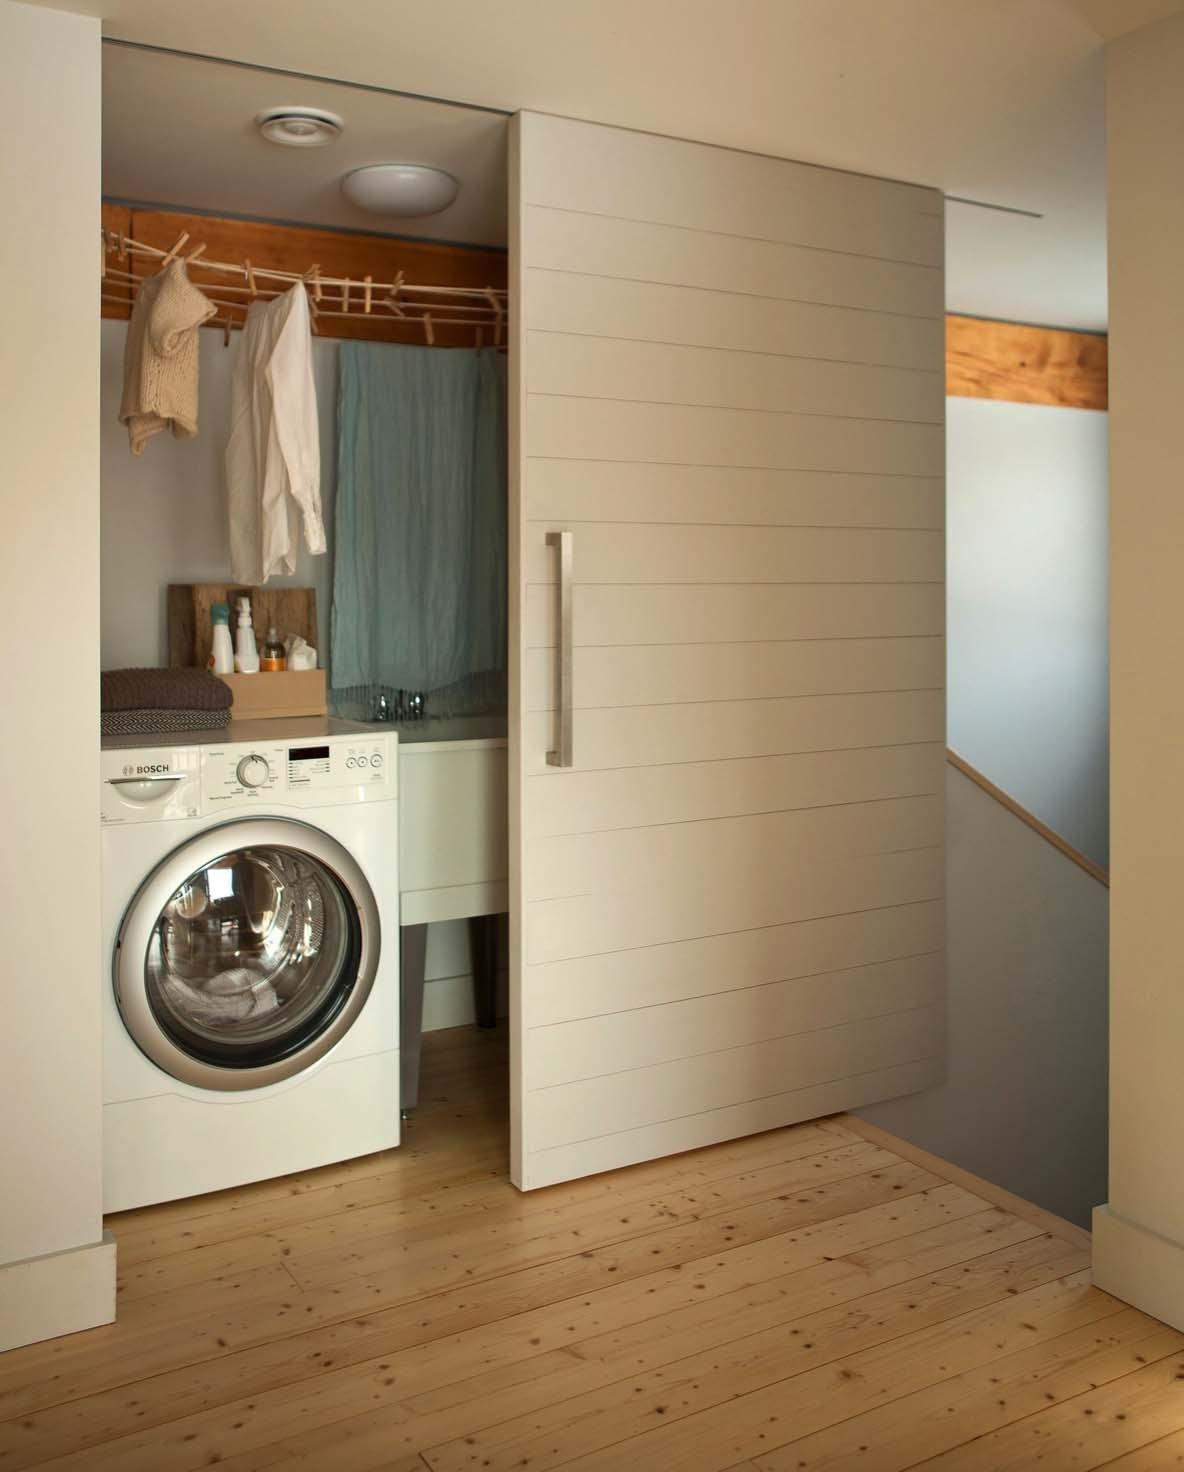 8. Conceal the Laundry Room by simphome.com